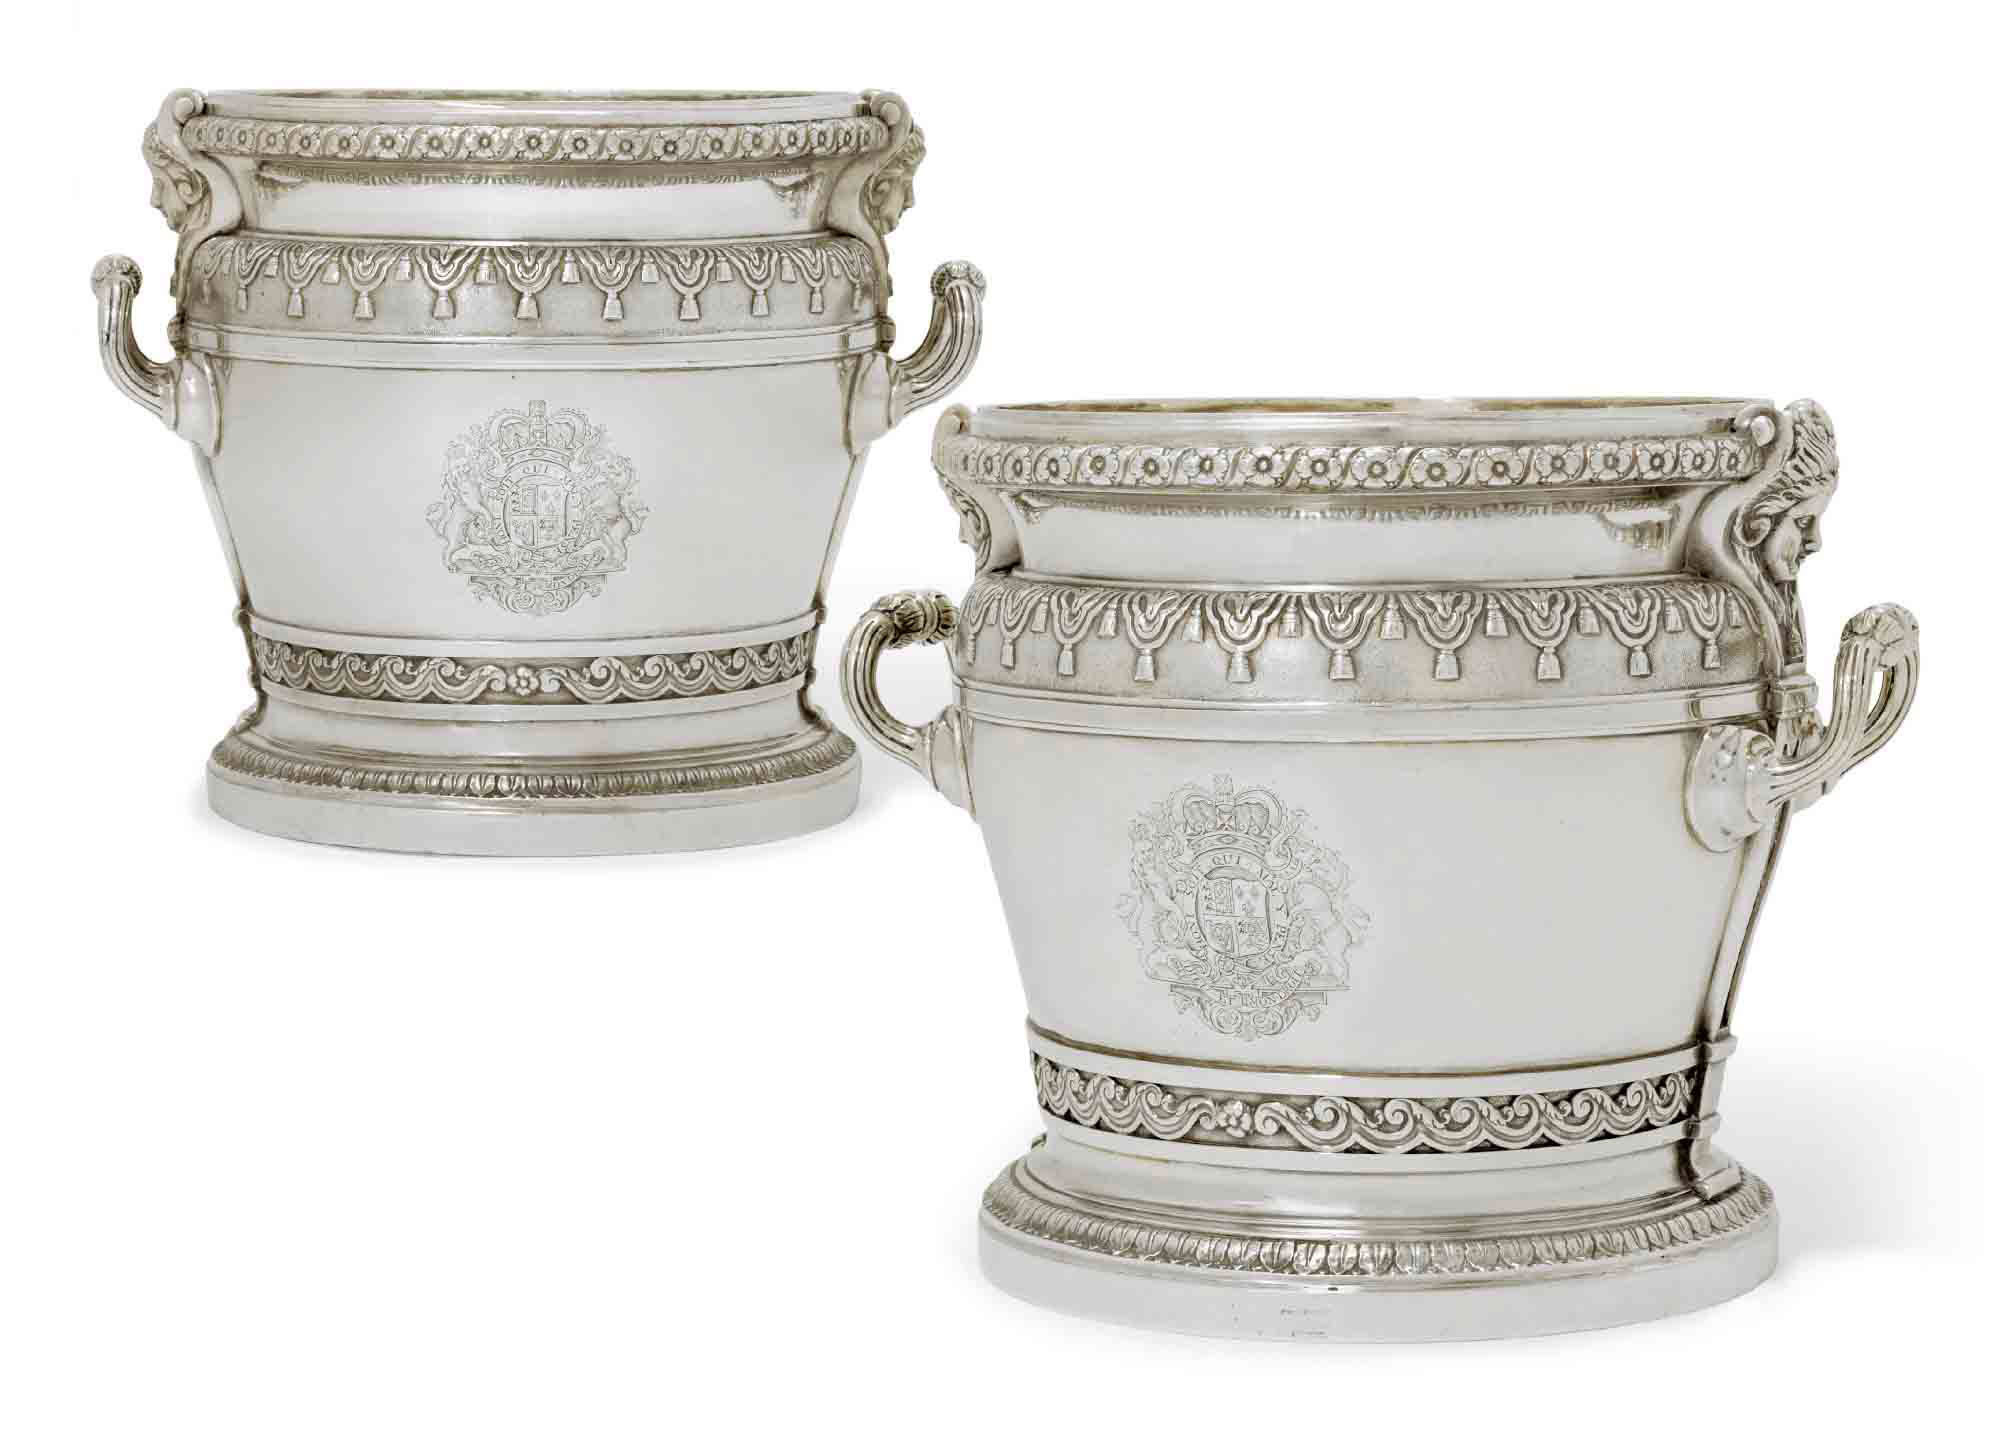 THE BINGLEY-WALPOLE WINE-COOLERS  A PAIR OF QUEEN ANNE SILVER ROYAL AMBASSADORIAL WINE-COOLERS OR ICE-PAILS